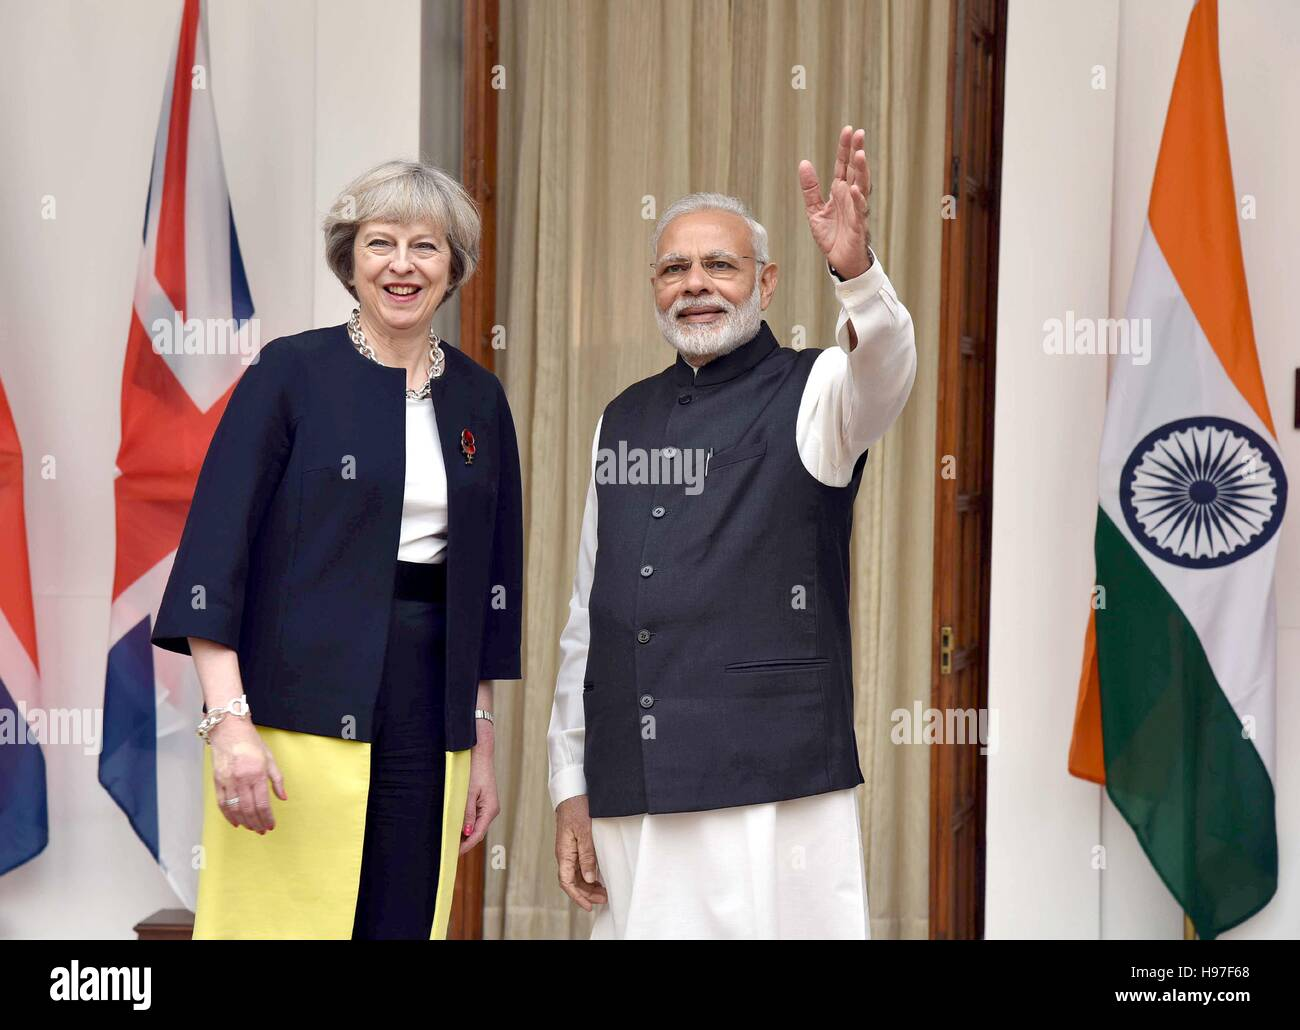 Indian Prime Minister Narendra Modi with British Prime Minister Theresa May before their bilateral meeting at Hyderabad Stock Photo